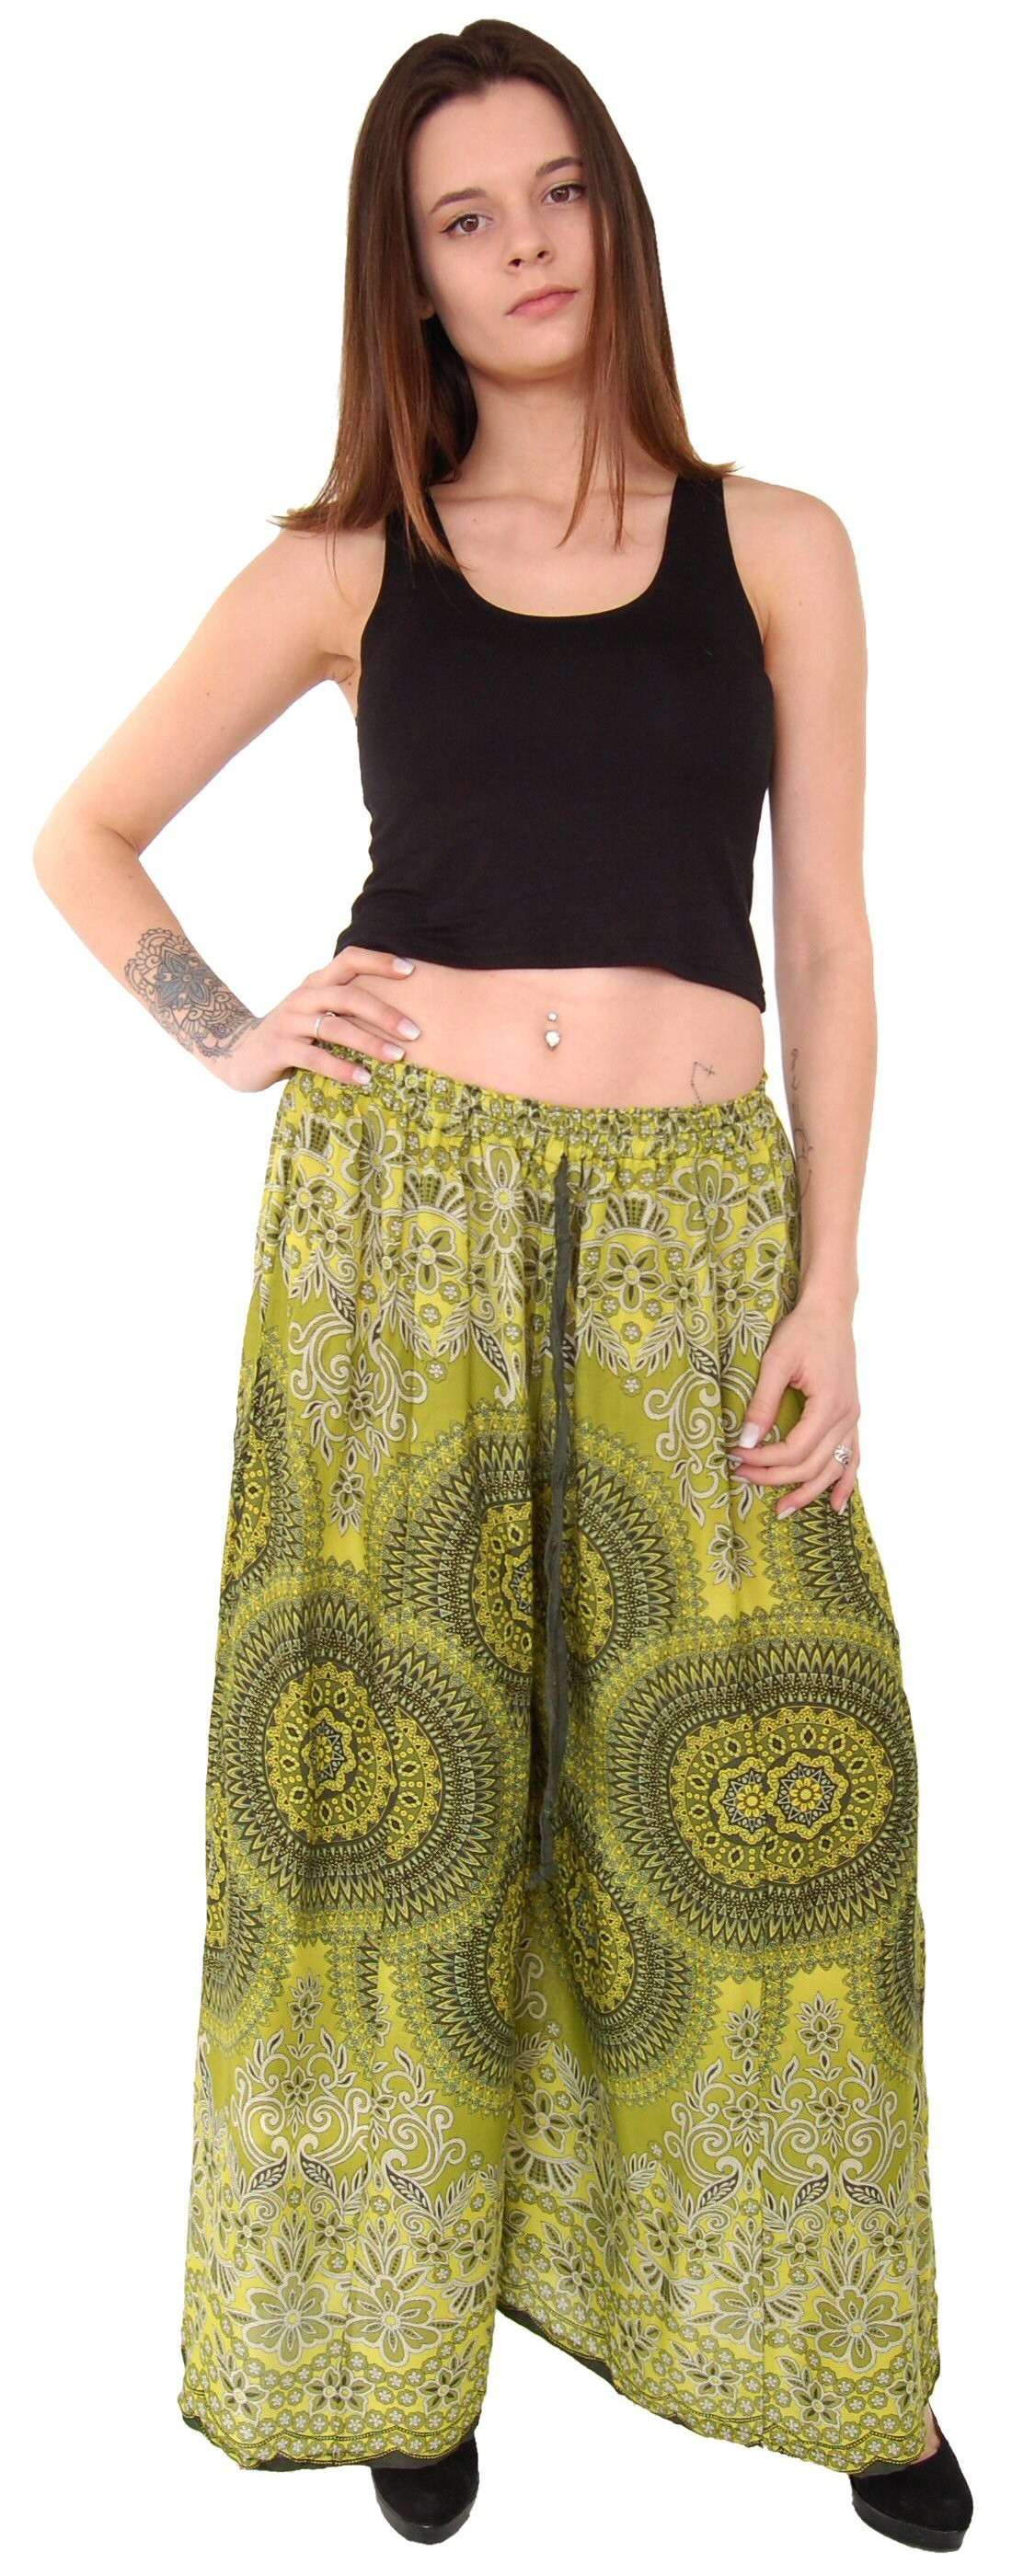 VISCOSE TROUSERS AND SHORTS AB-BCP13BB - Oriente Import S.r.l.